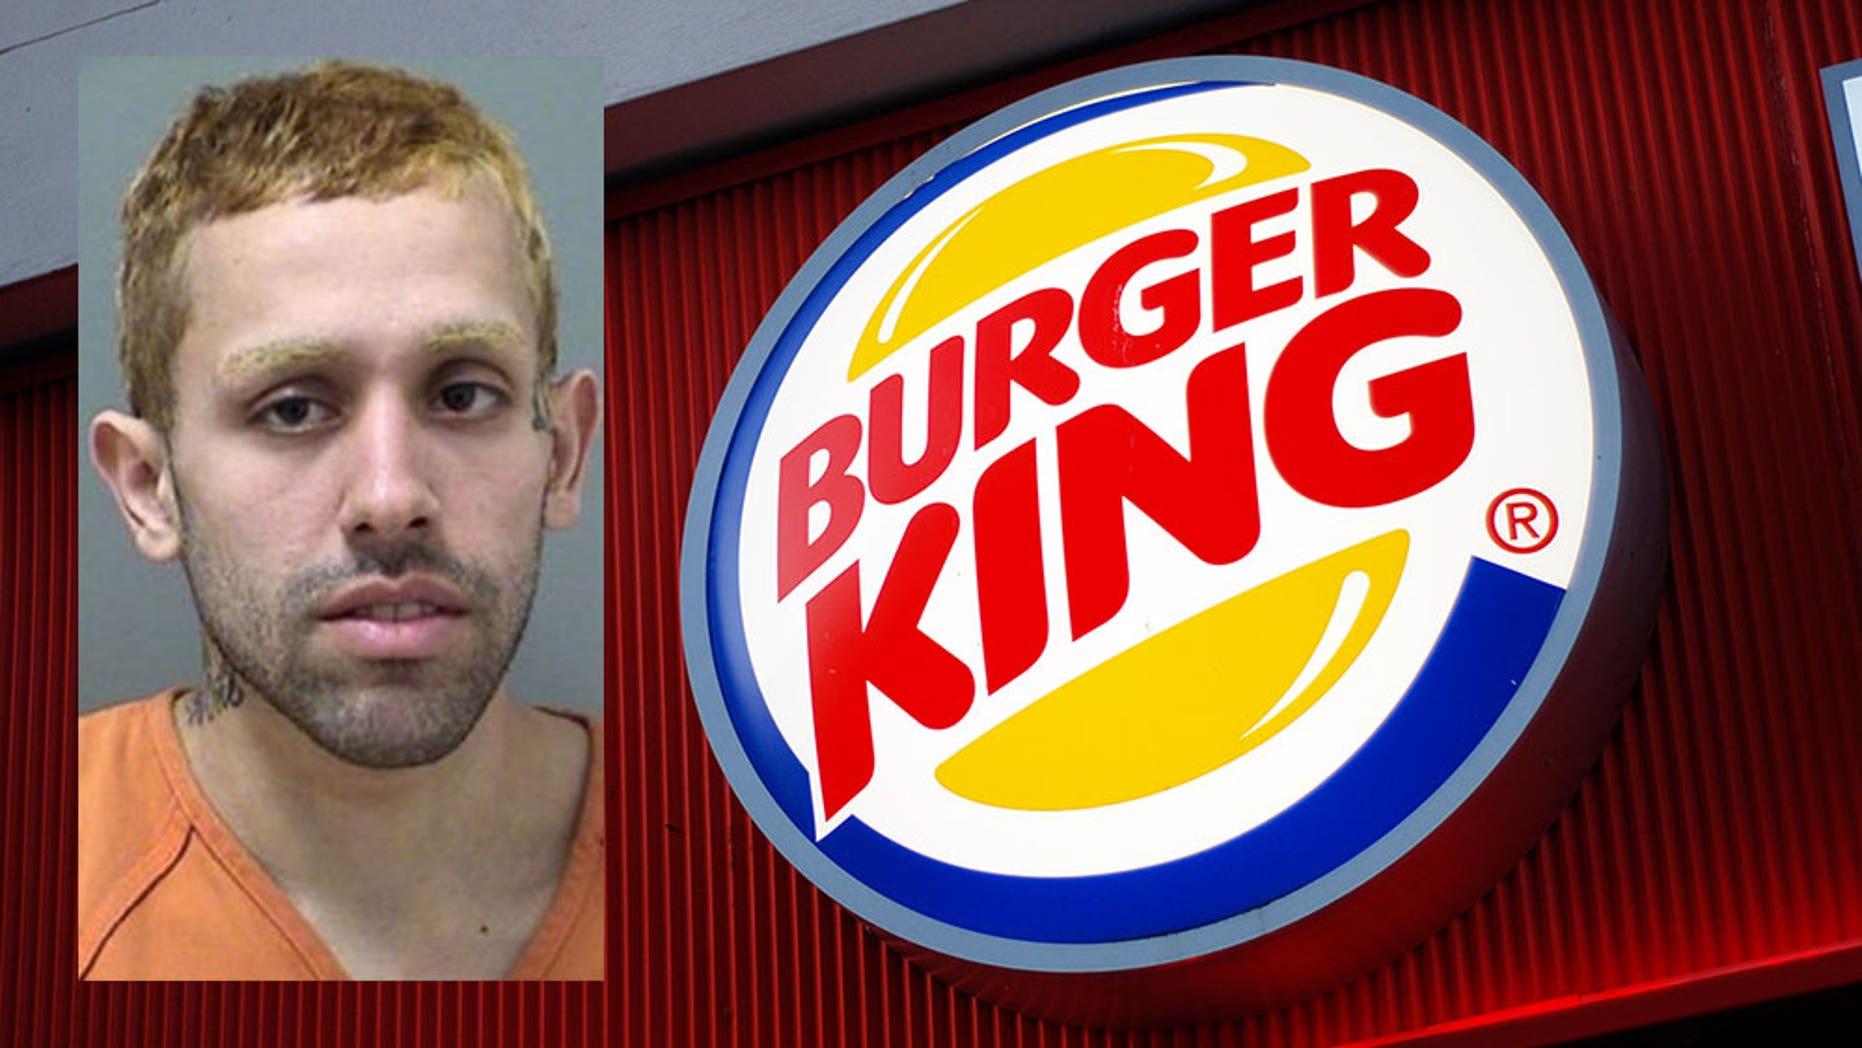 Jerry Mercado, 25, escaped from a prison in Enfield on Jan. 7, and stopped at Burger King before calling his mom for a ride out of town.